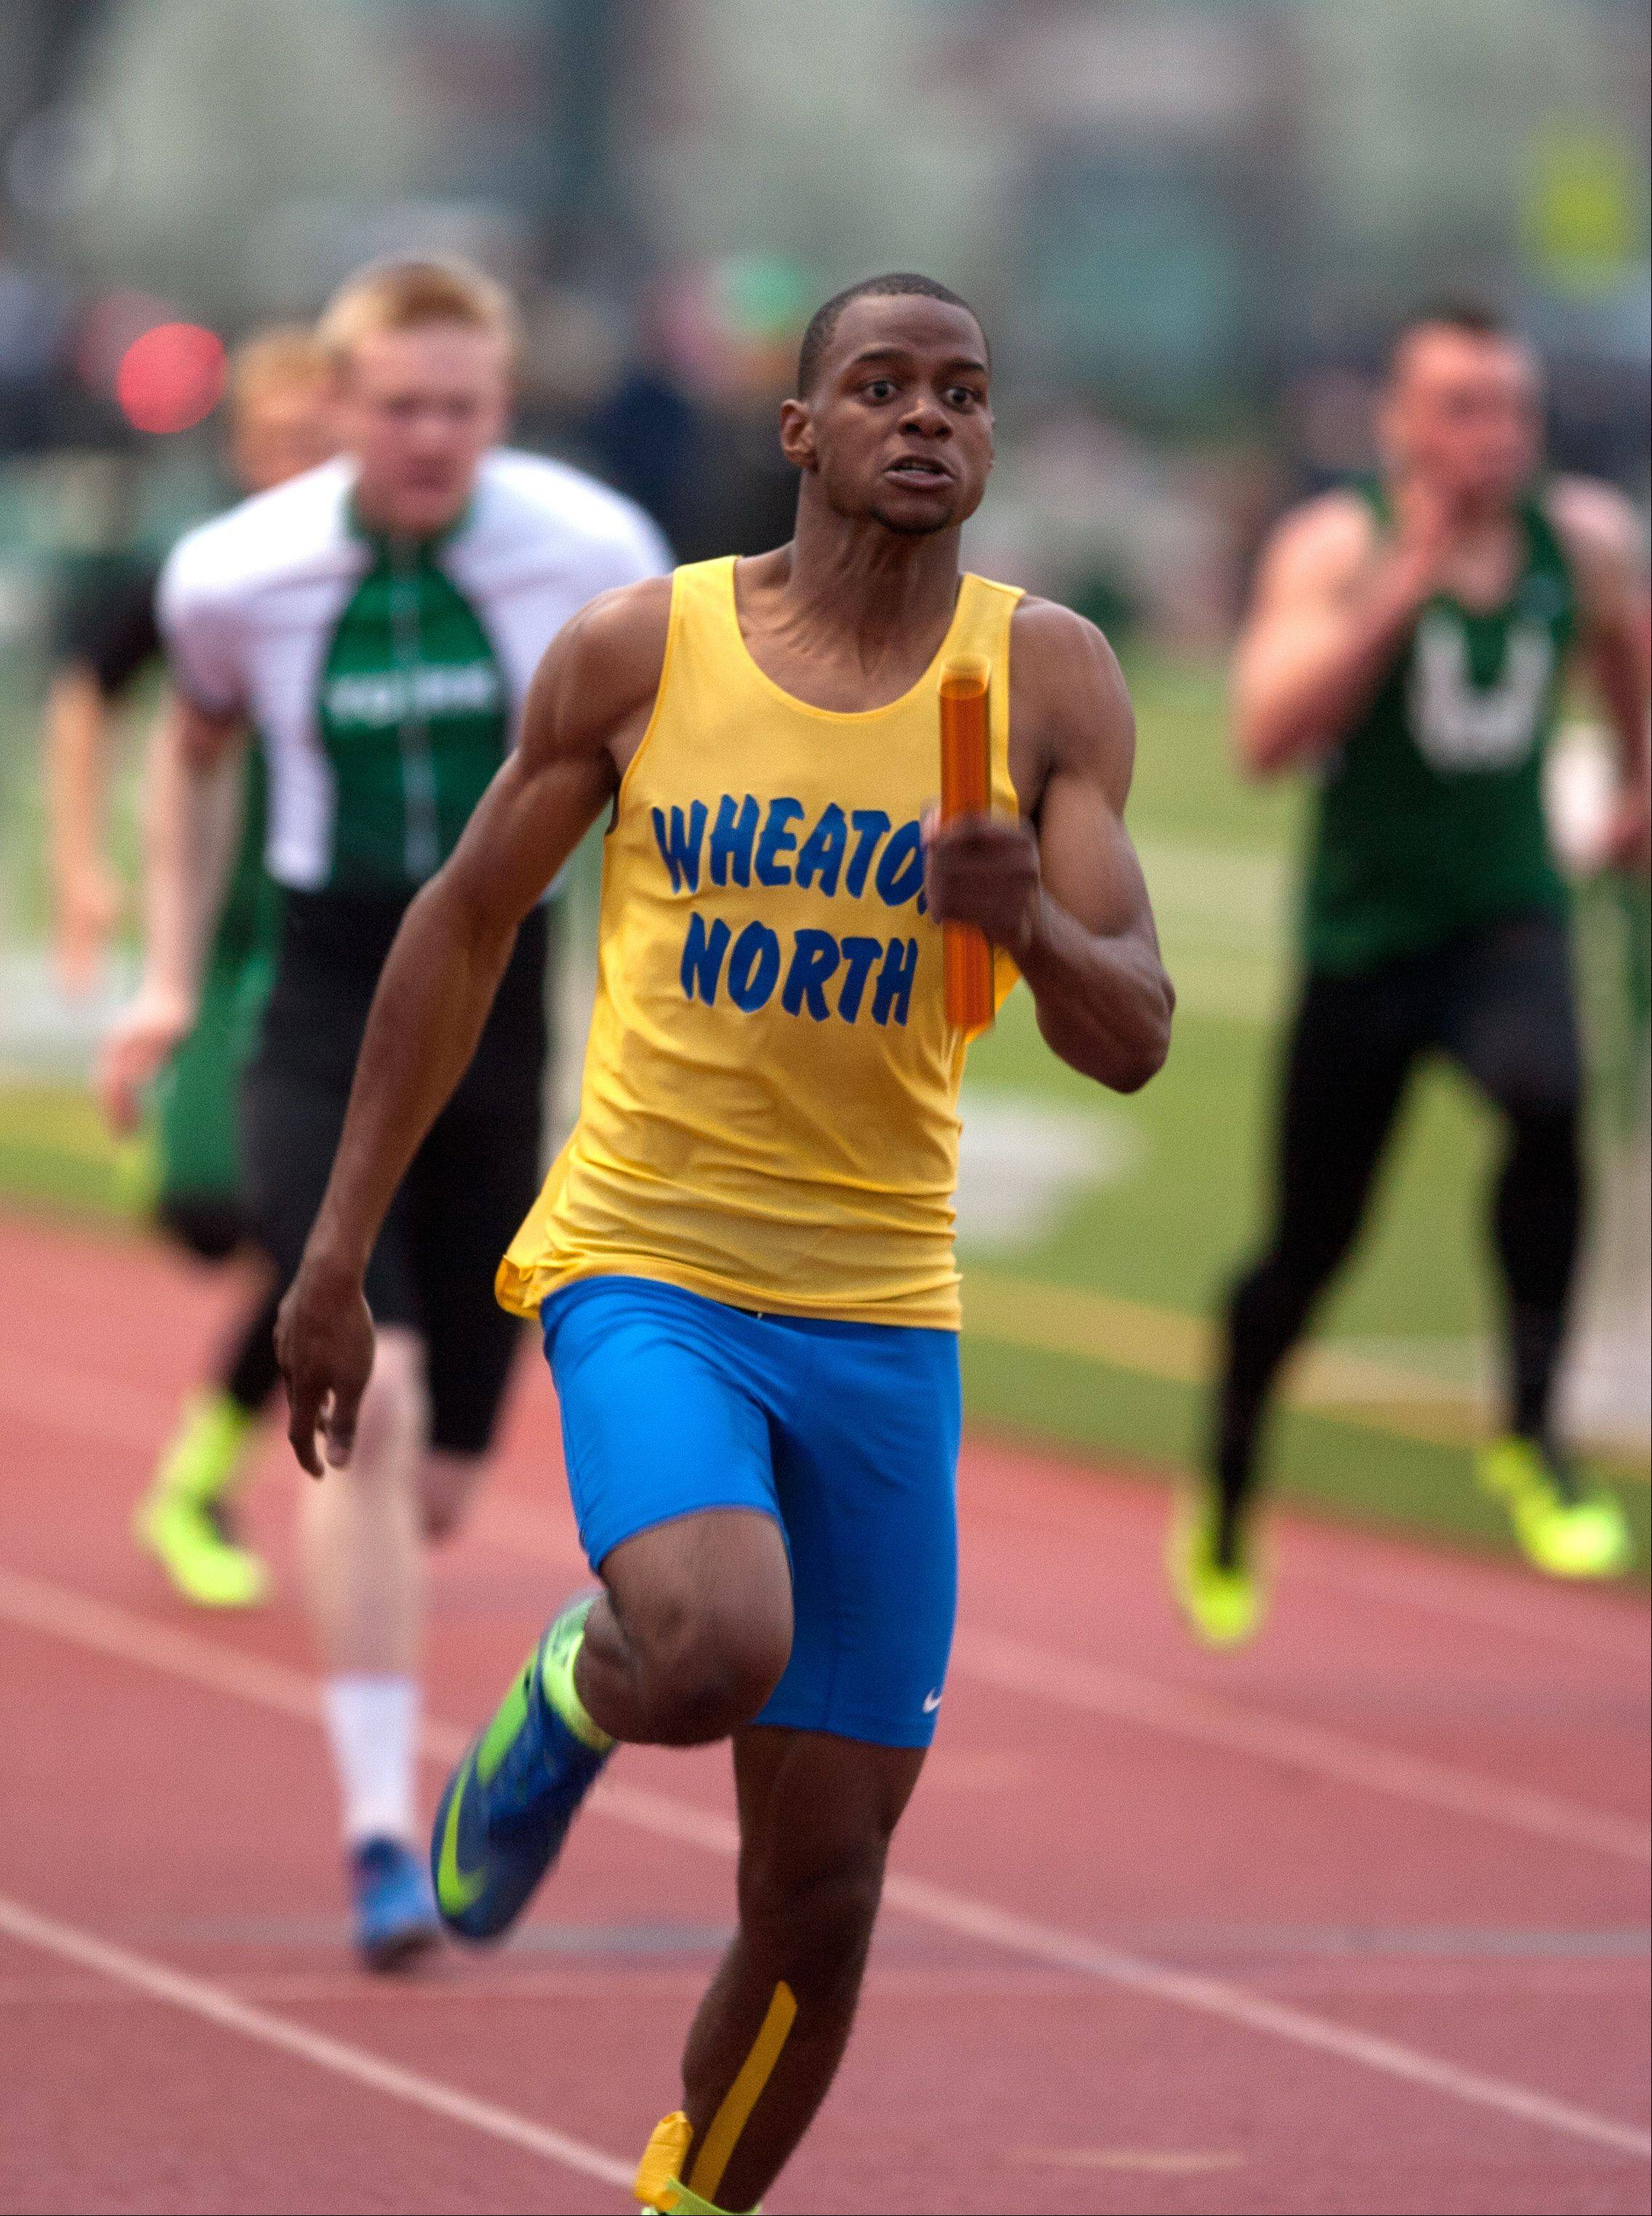 Wheaton North�s Zach Gordon anchors a win in the second heat of the 4x100 meter run, during the DuPage County boys track invitational at York High School.